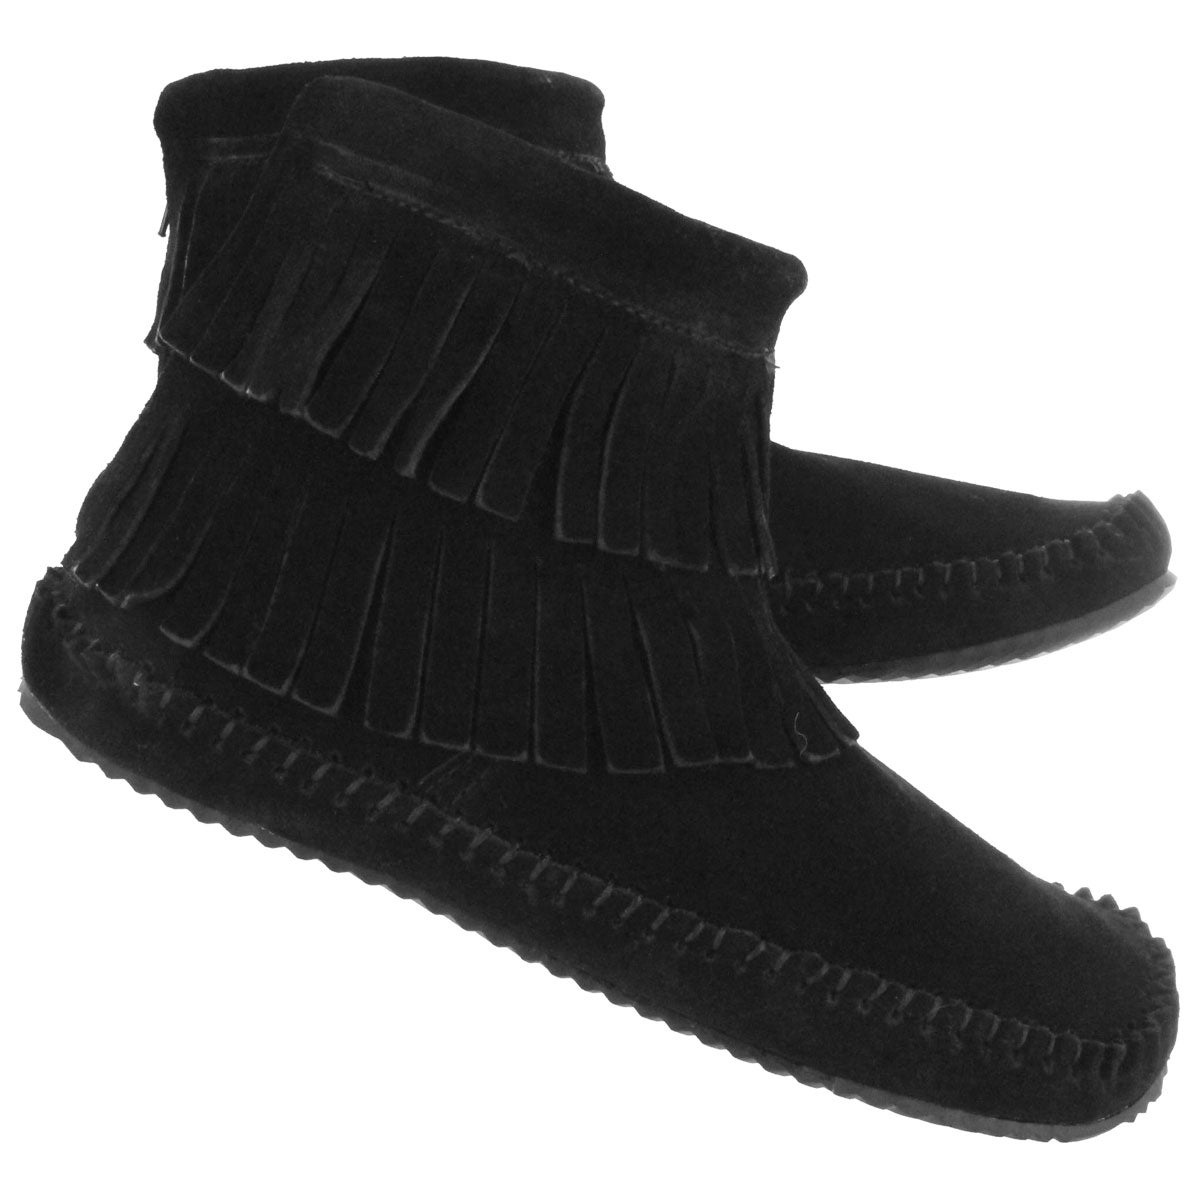 Women's DEBRA II HI black suede back zip mocs